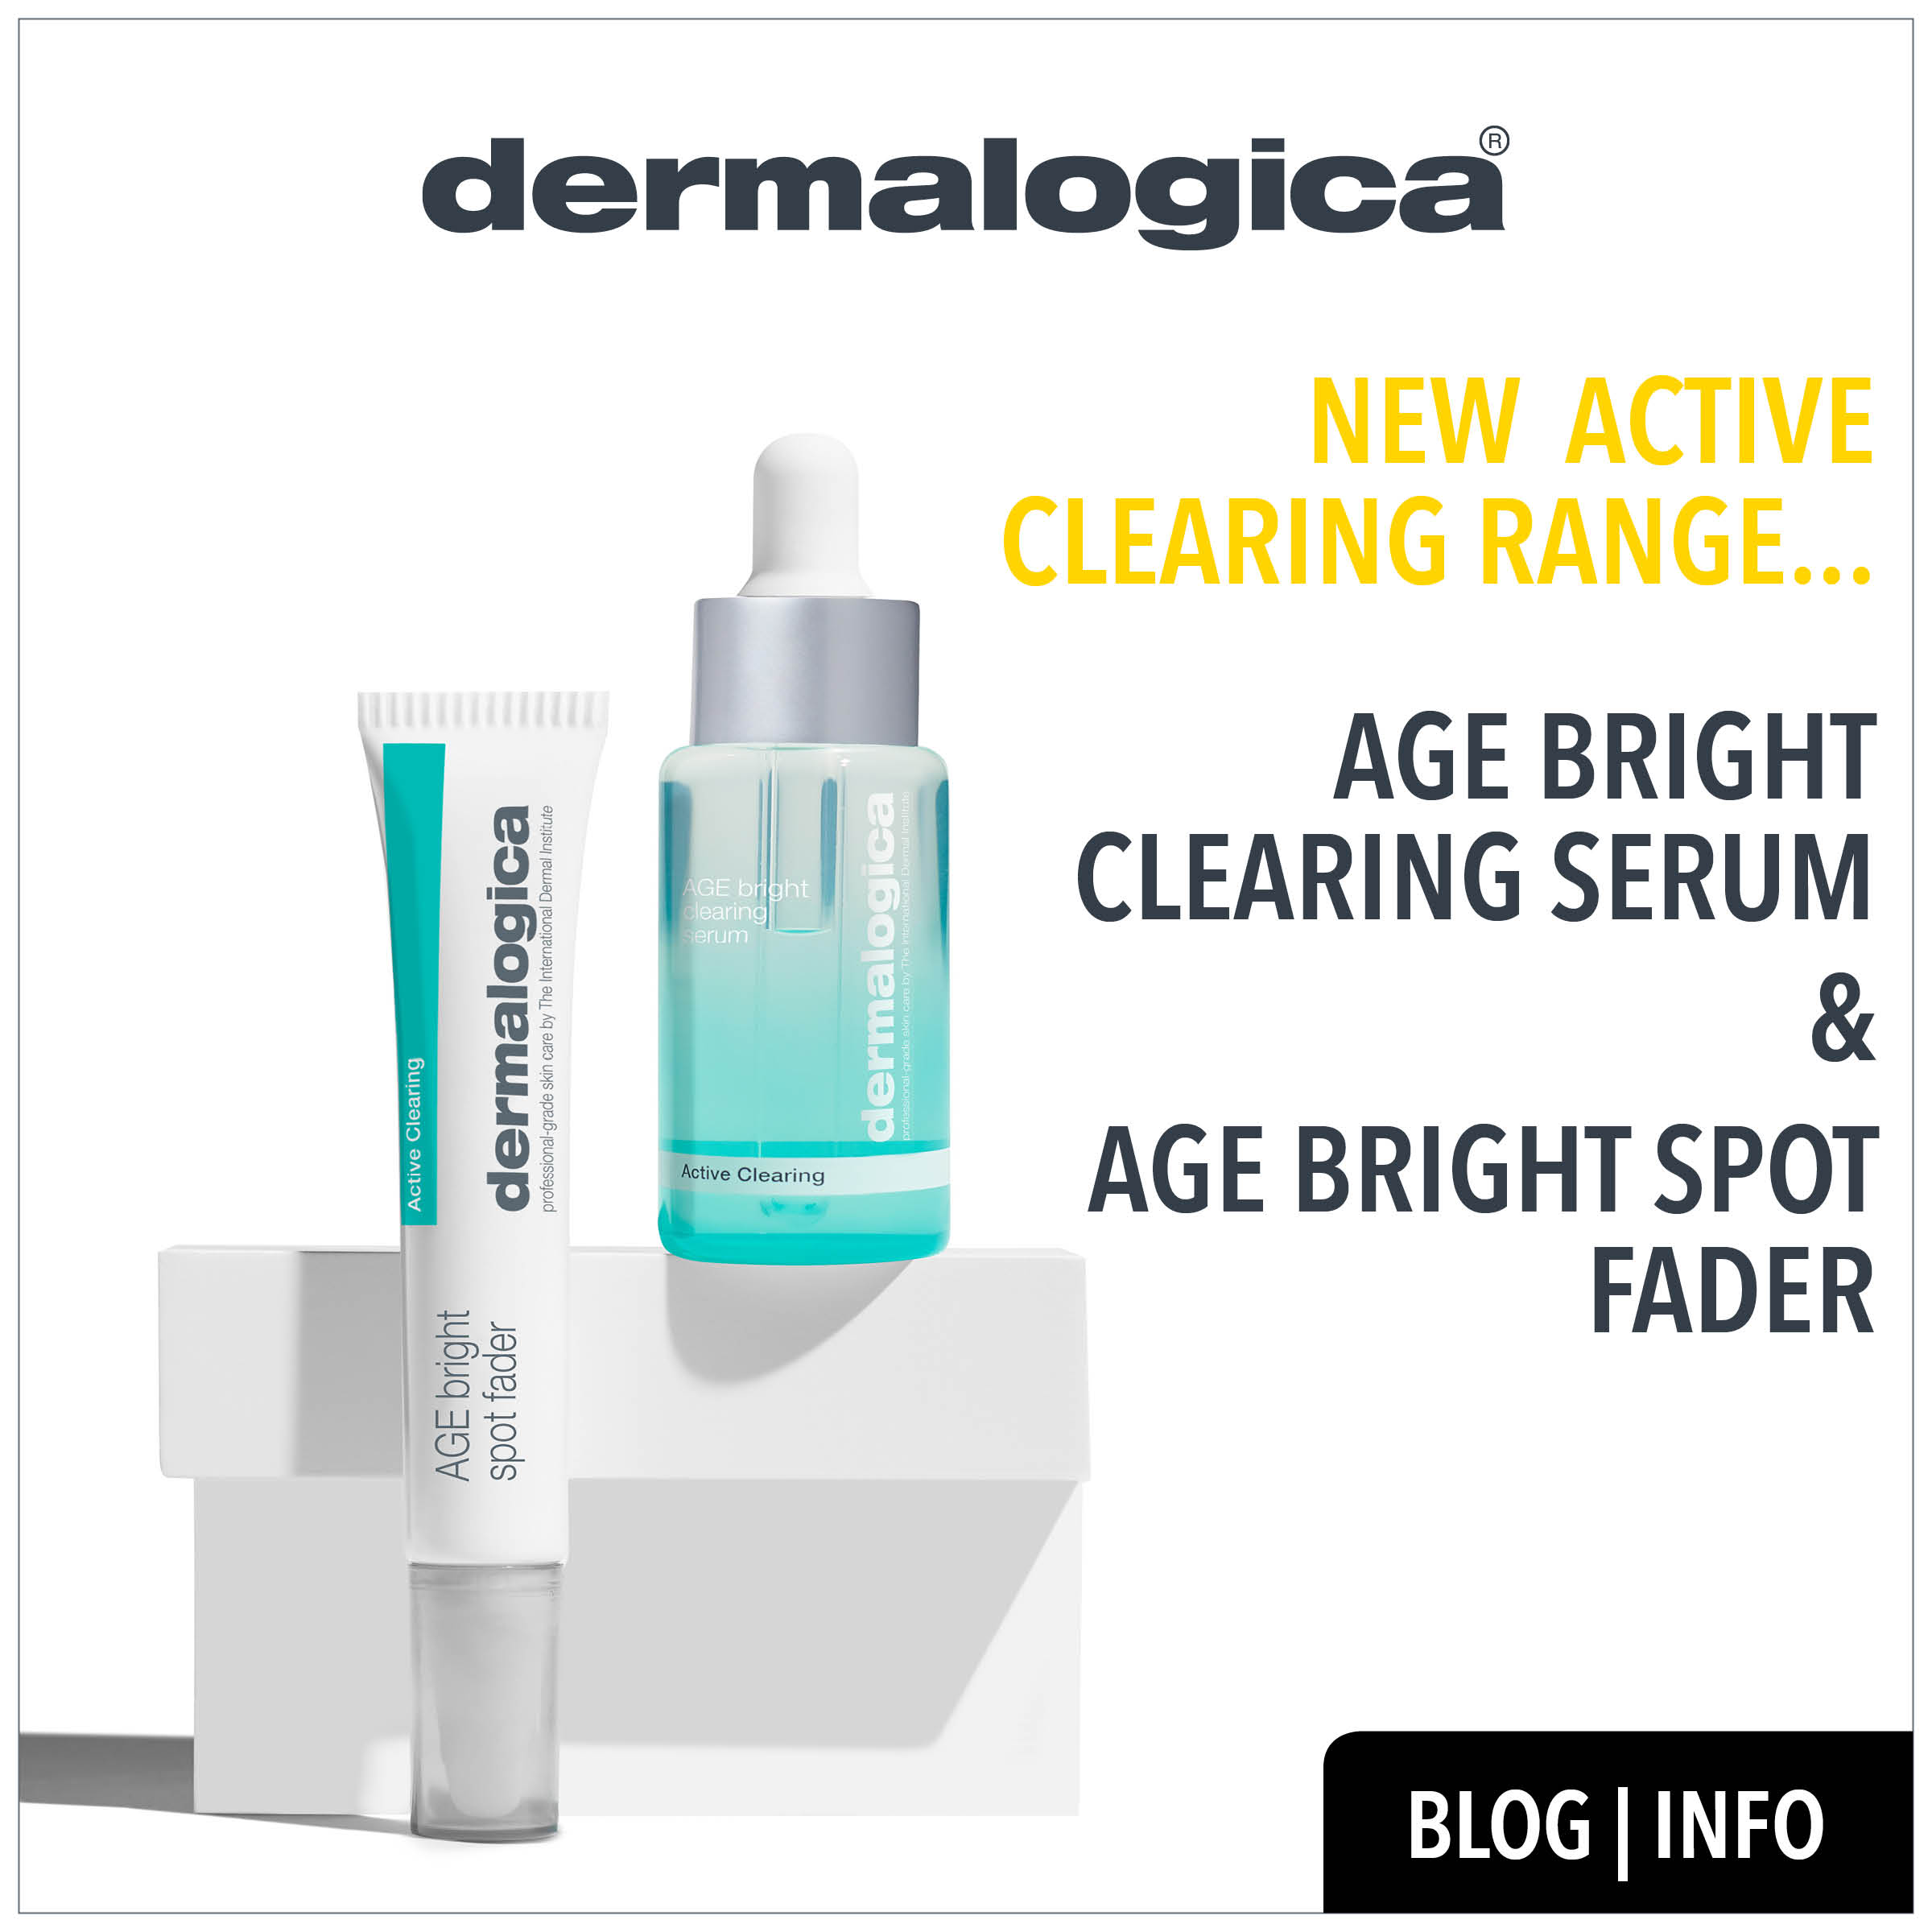 new active clearing range from dermalogica